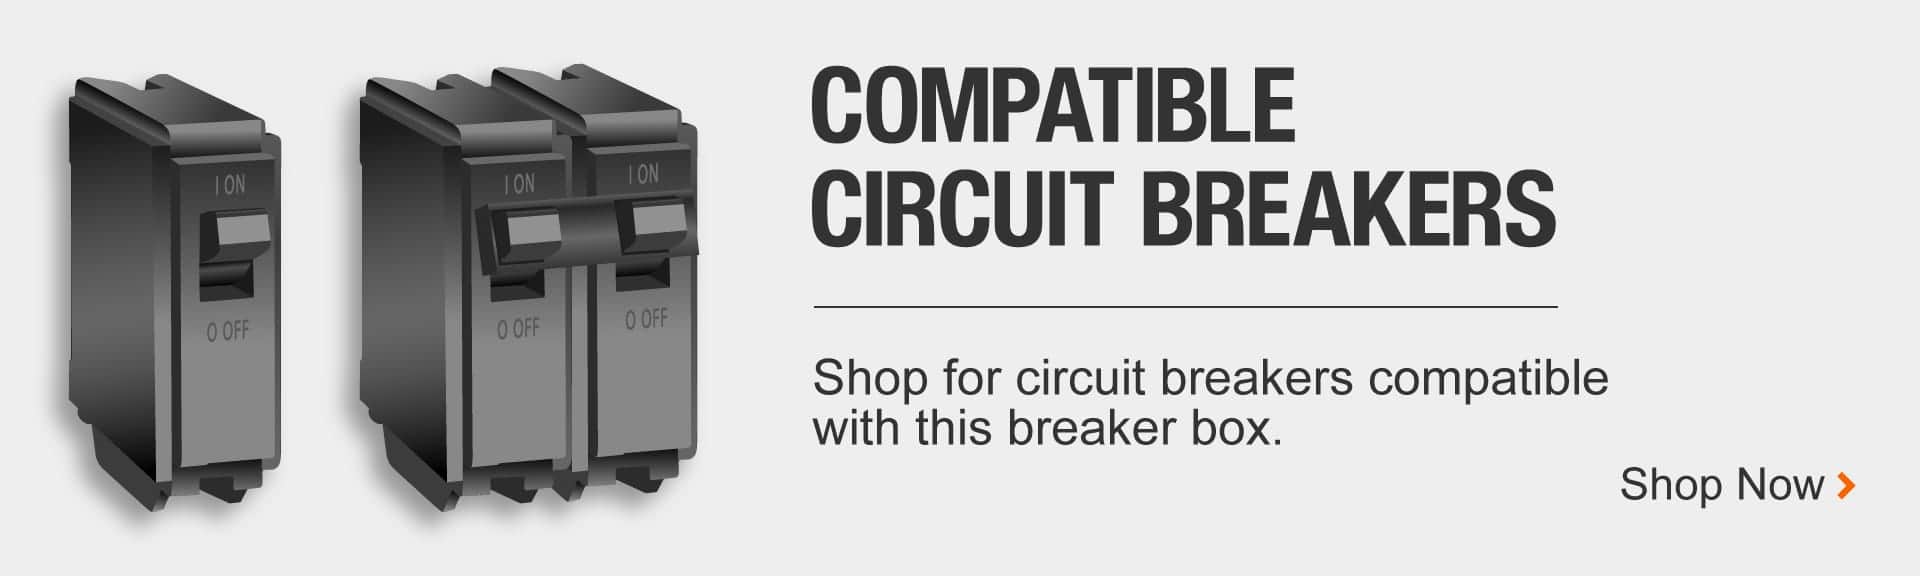 Shop for compatible circuit breakers.